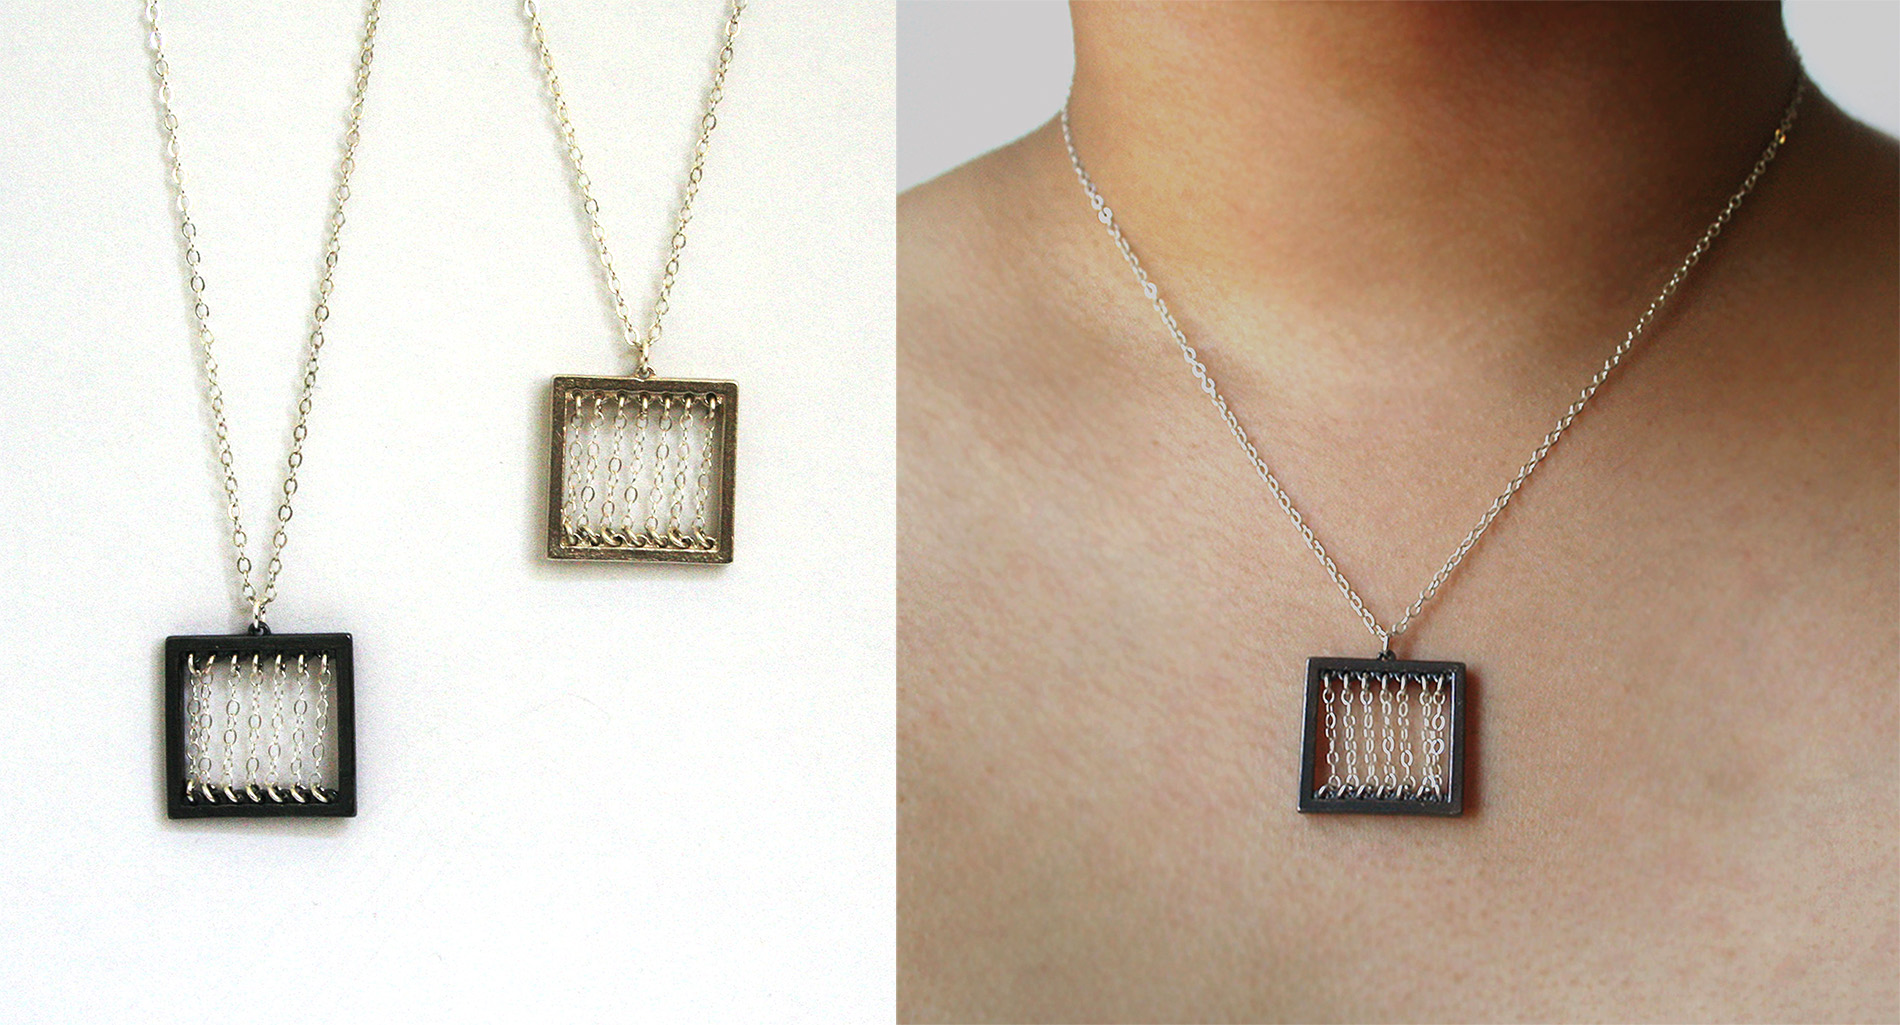 Rectangle x Chain Series - Necklace      Material: Silver